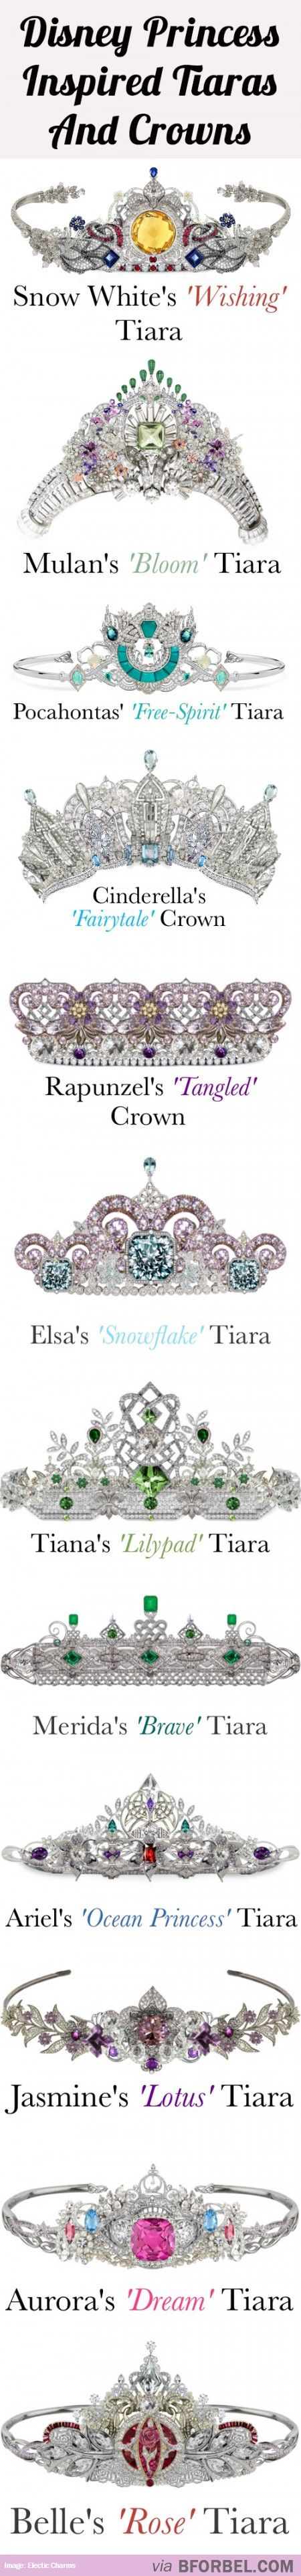 12 Disney Princess Tiaras And Crowns…